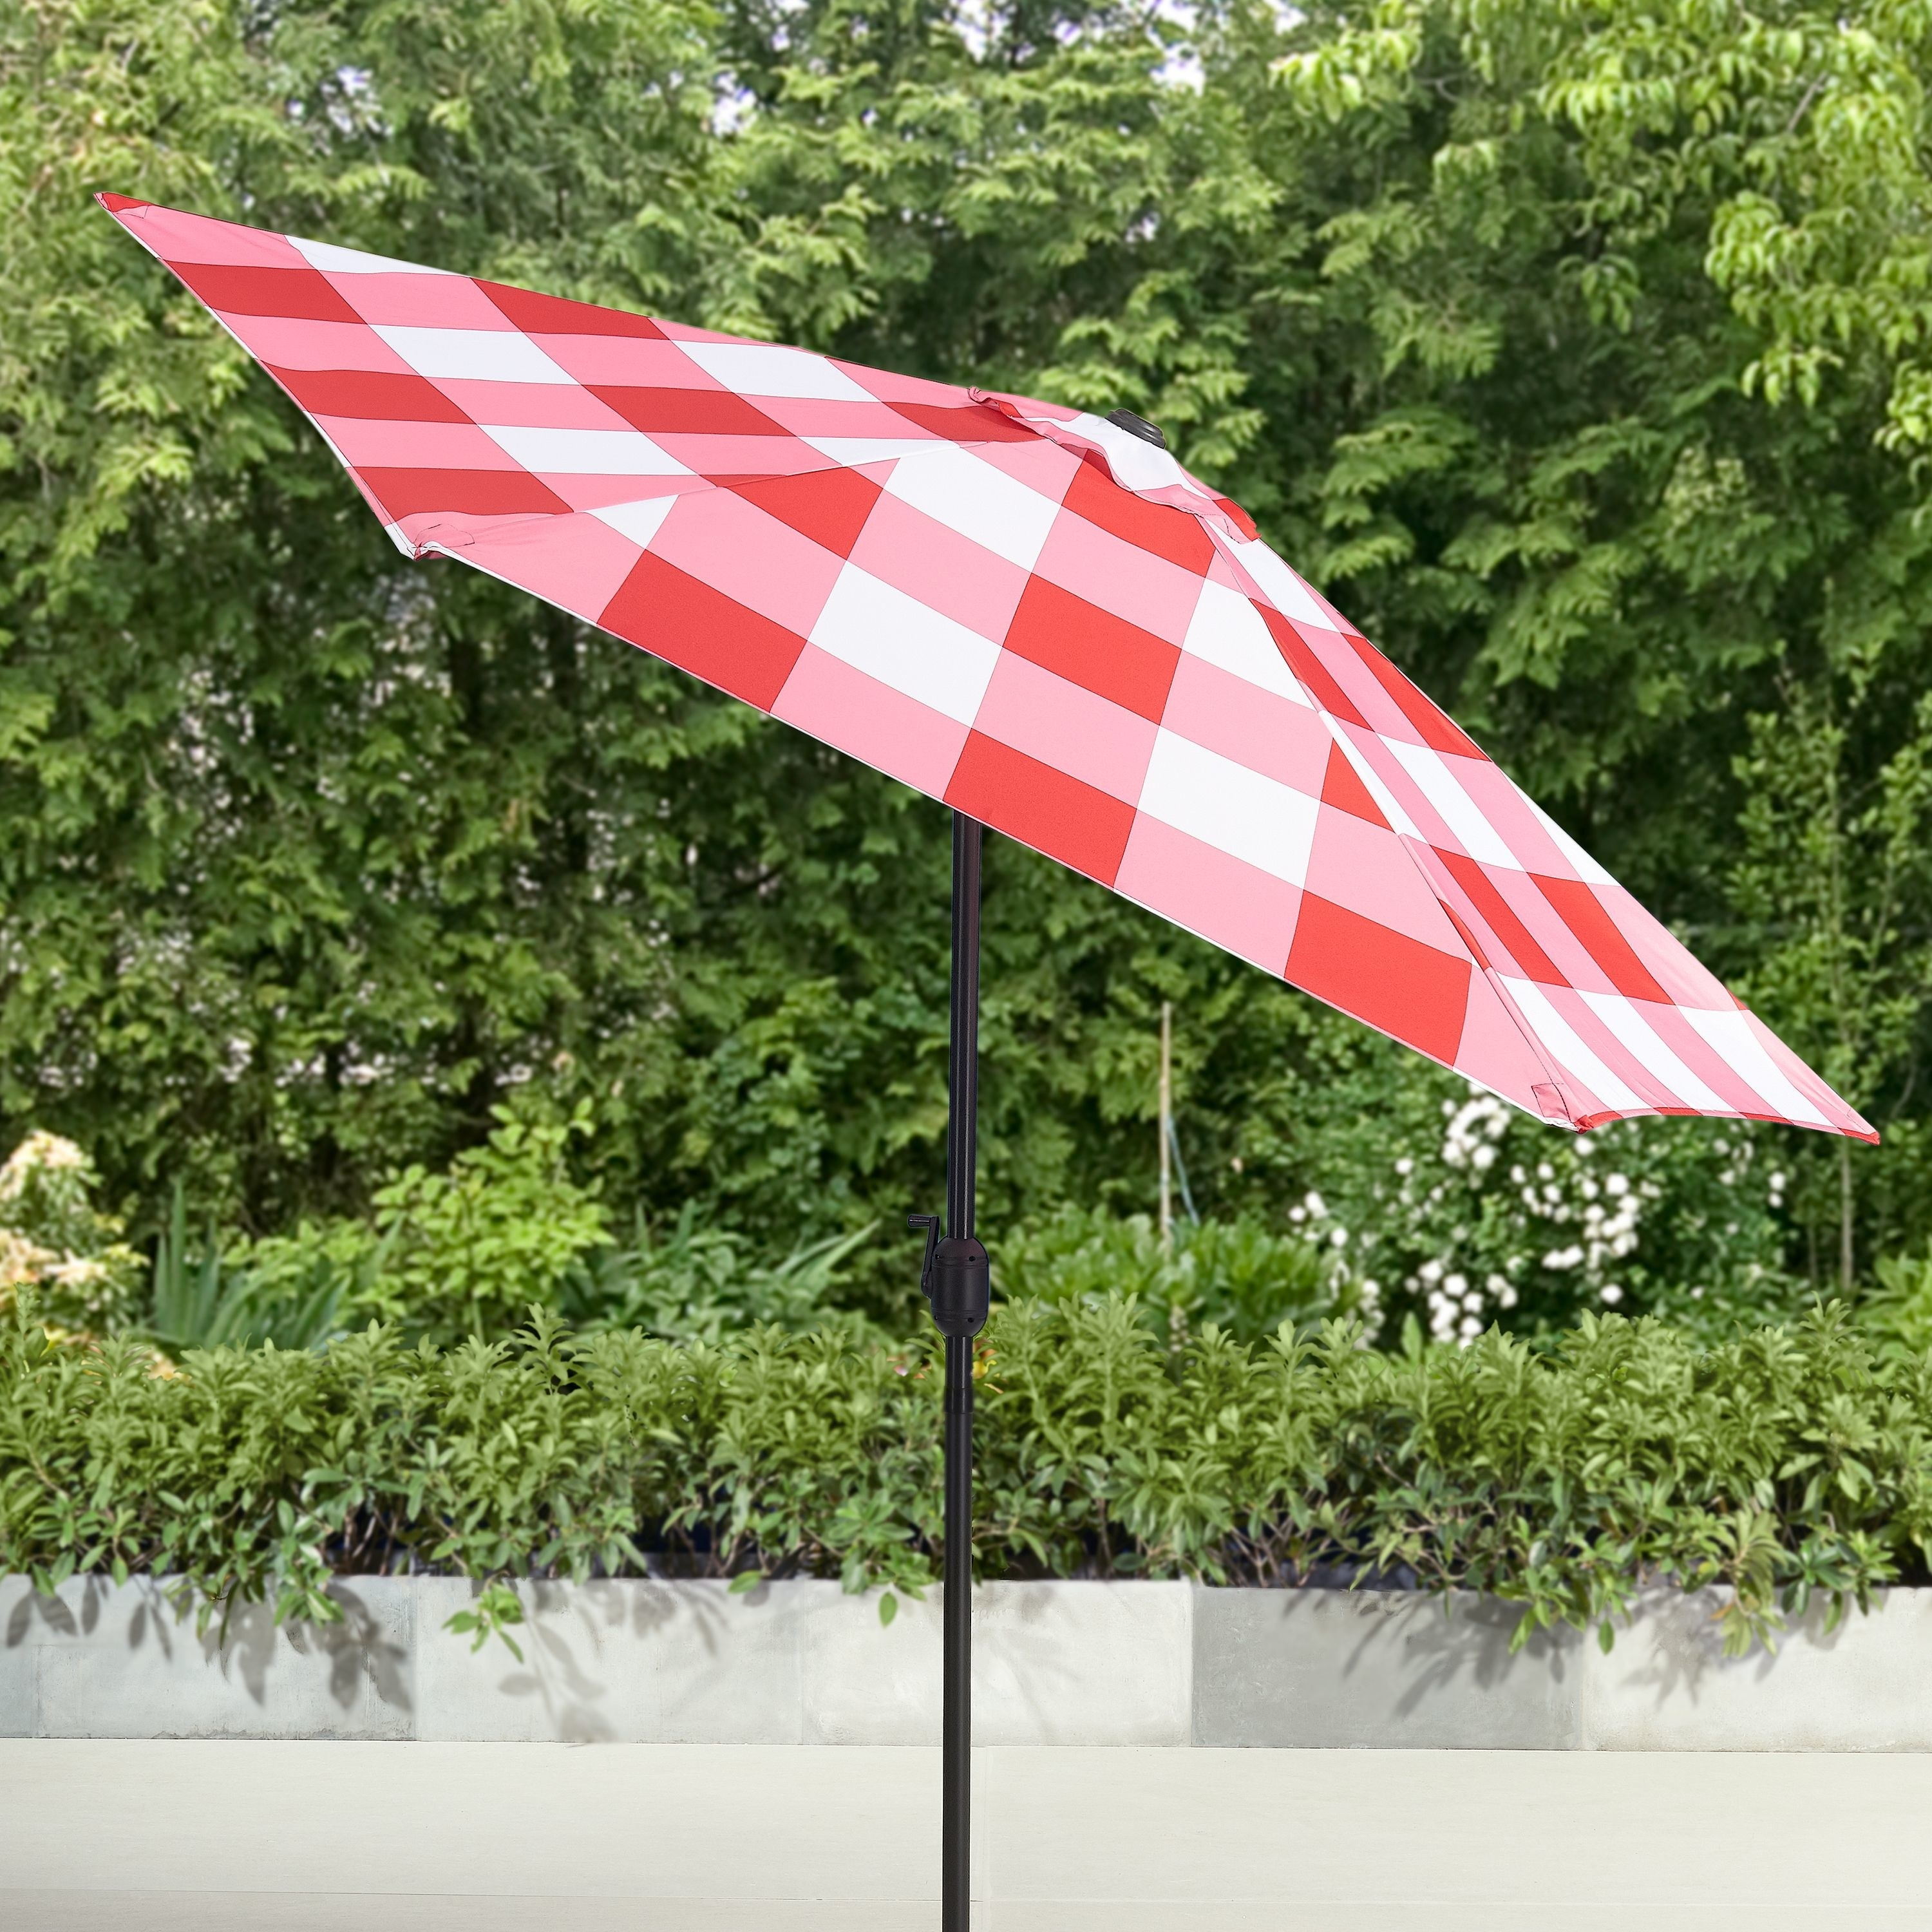 A red gingham umbrella with a black metal pole